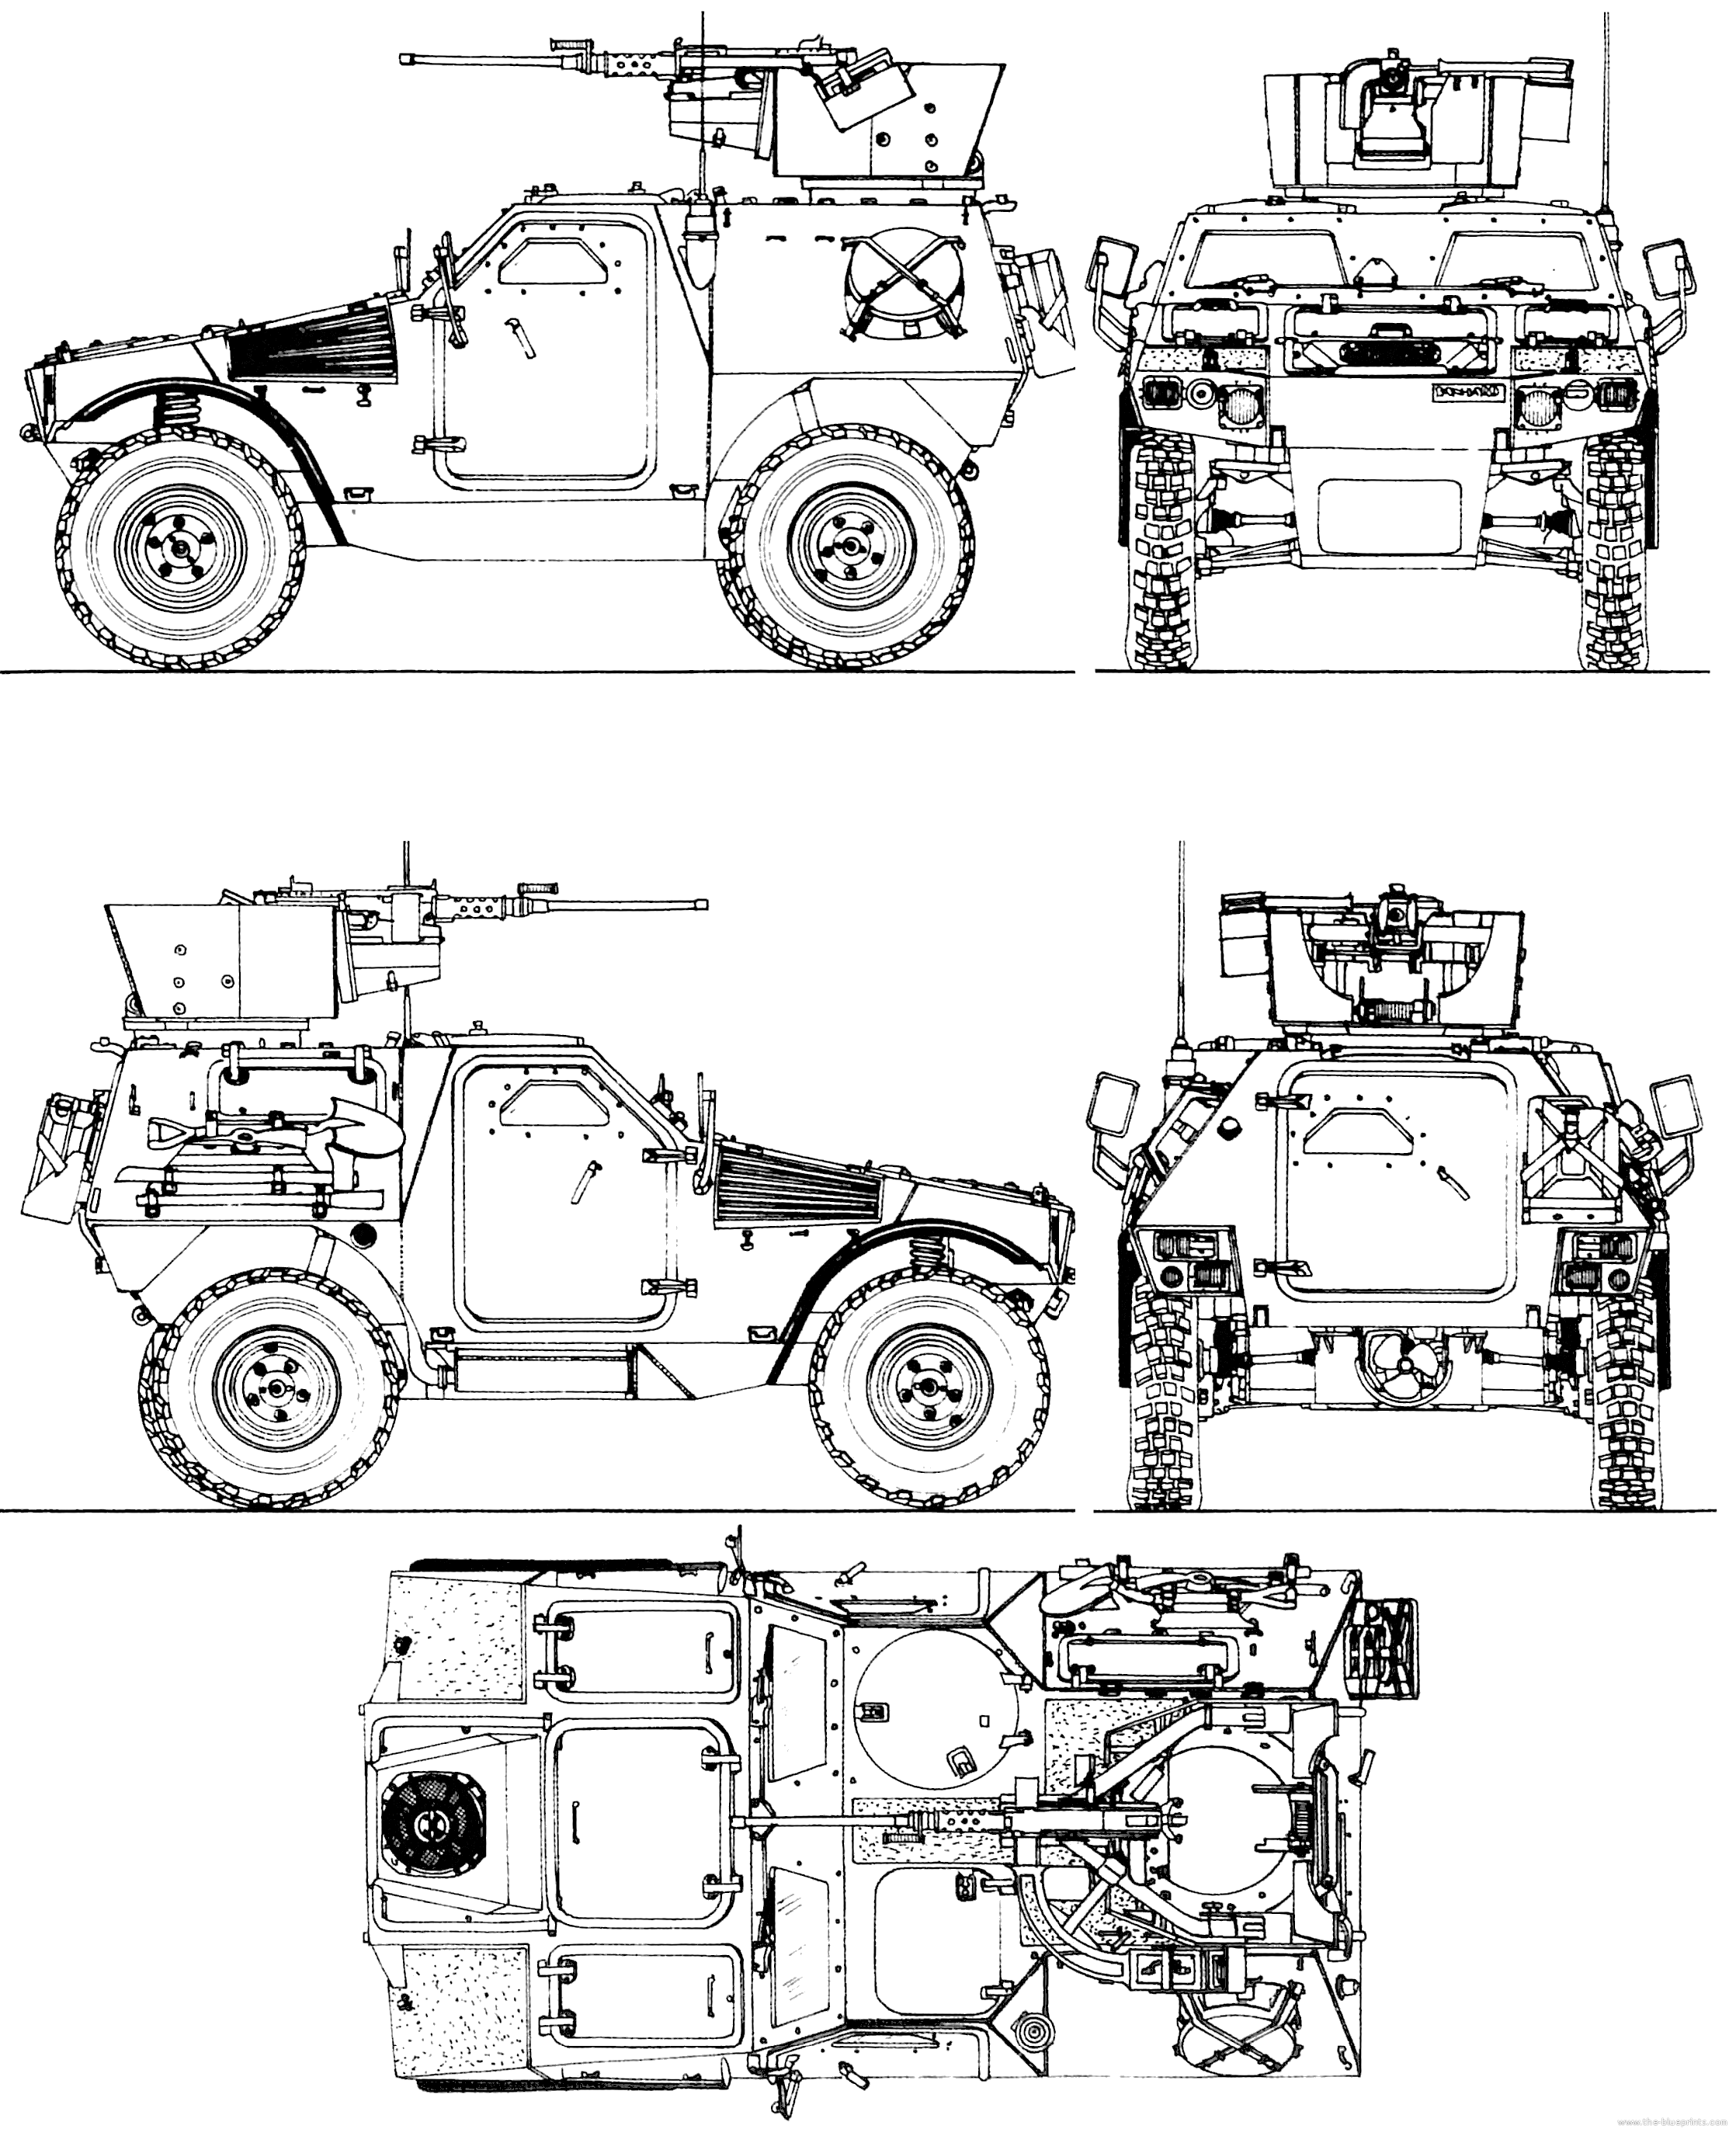 military coloring pages iraq | Pin by The Vendor Sender on Military | Military vehicles ...